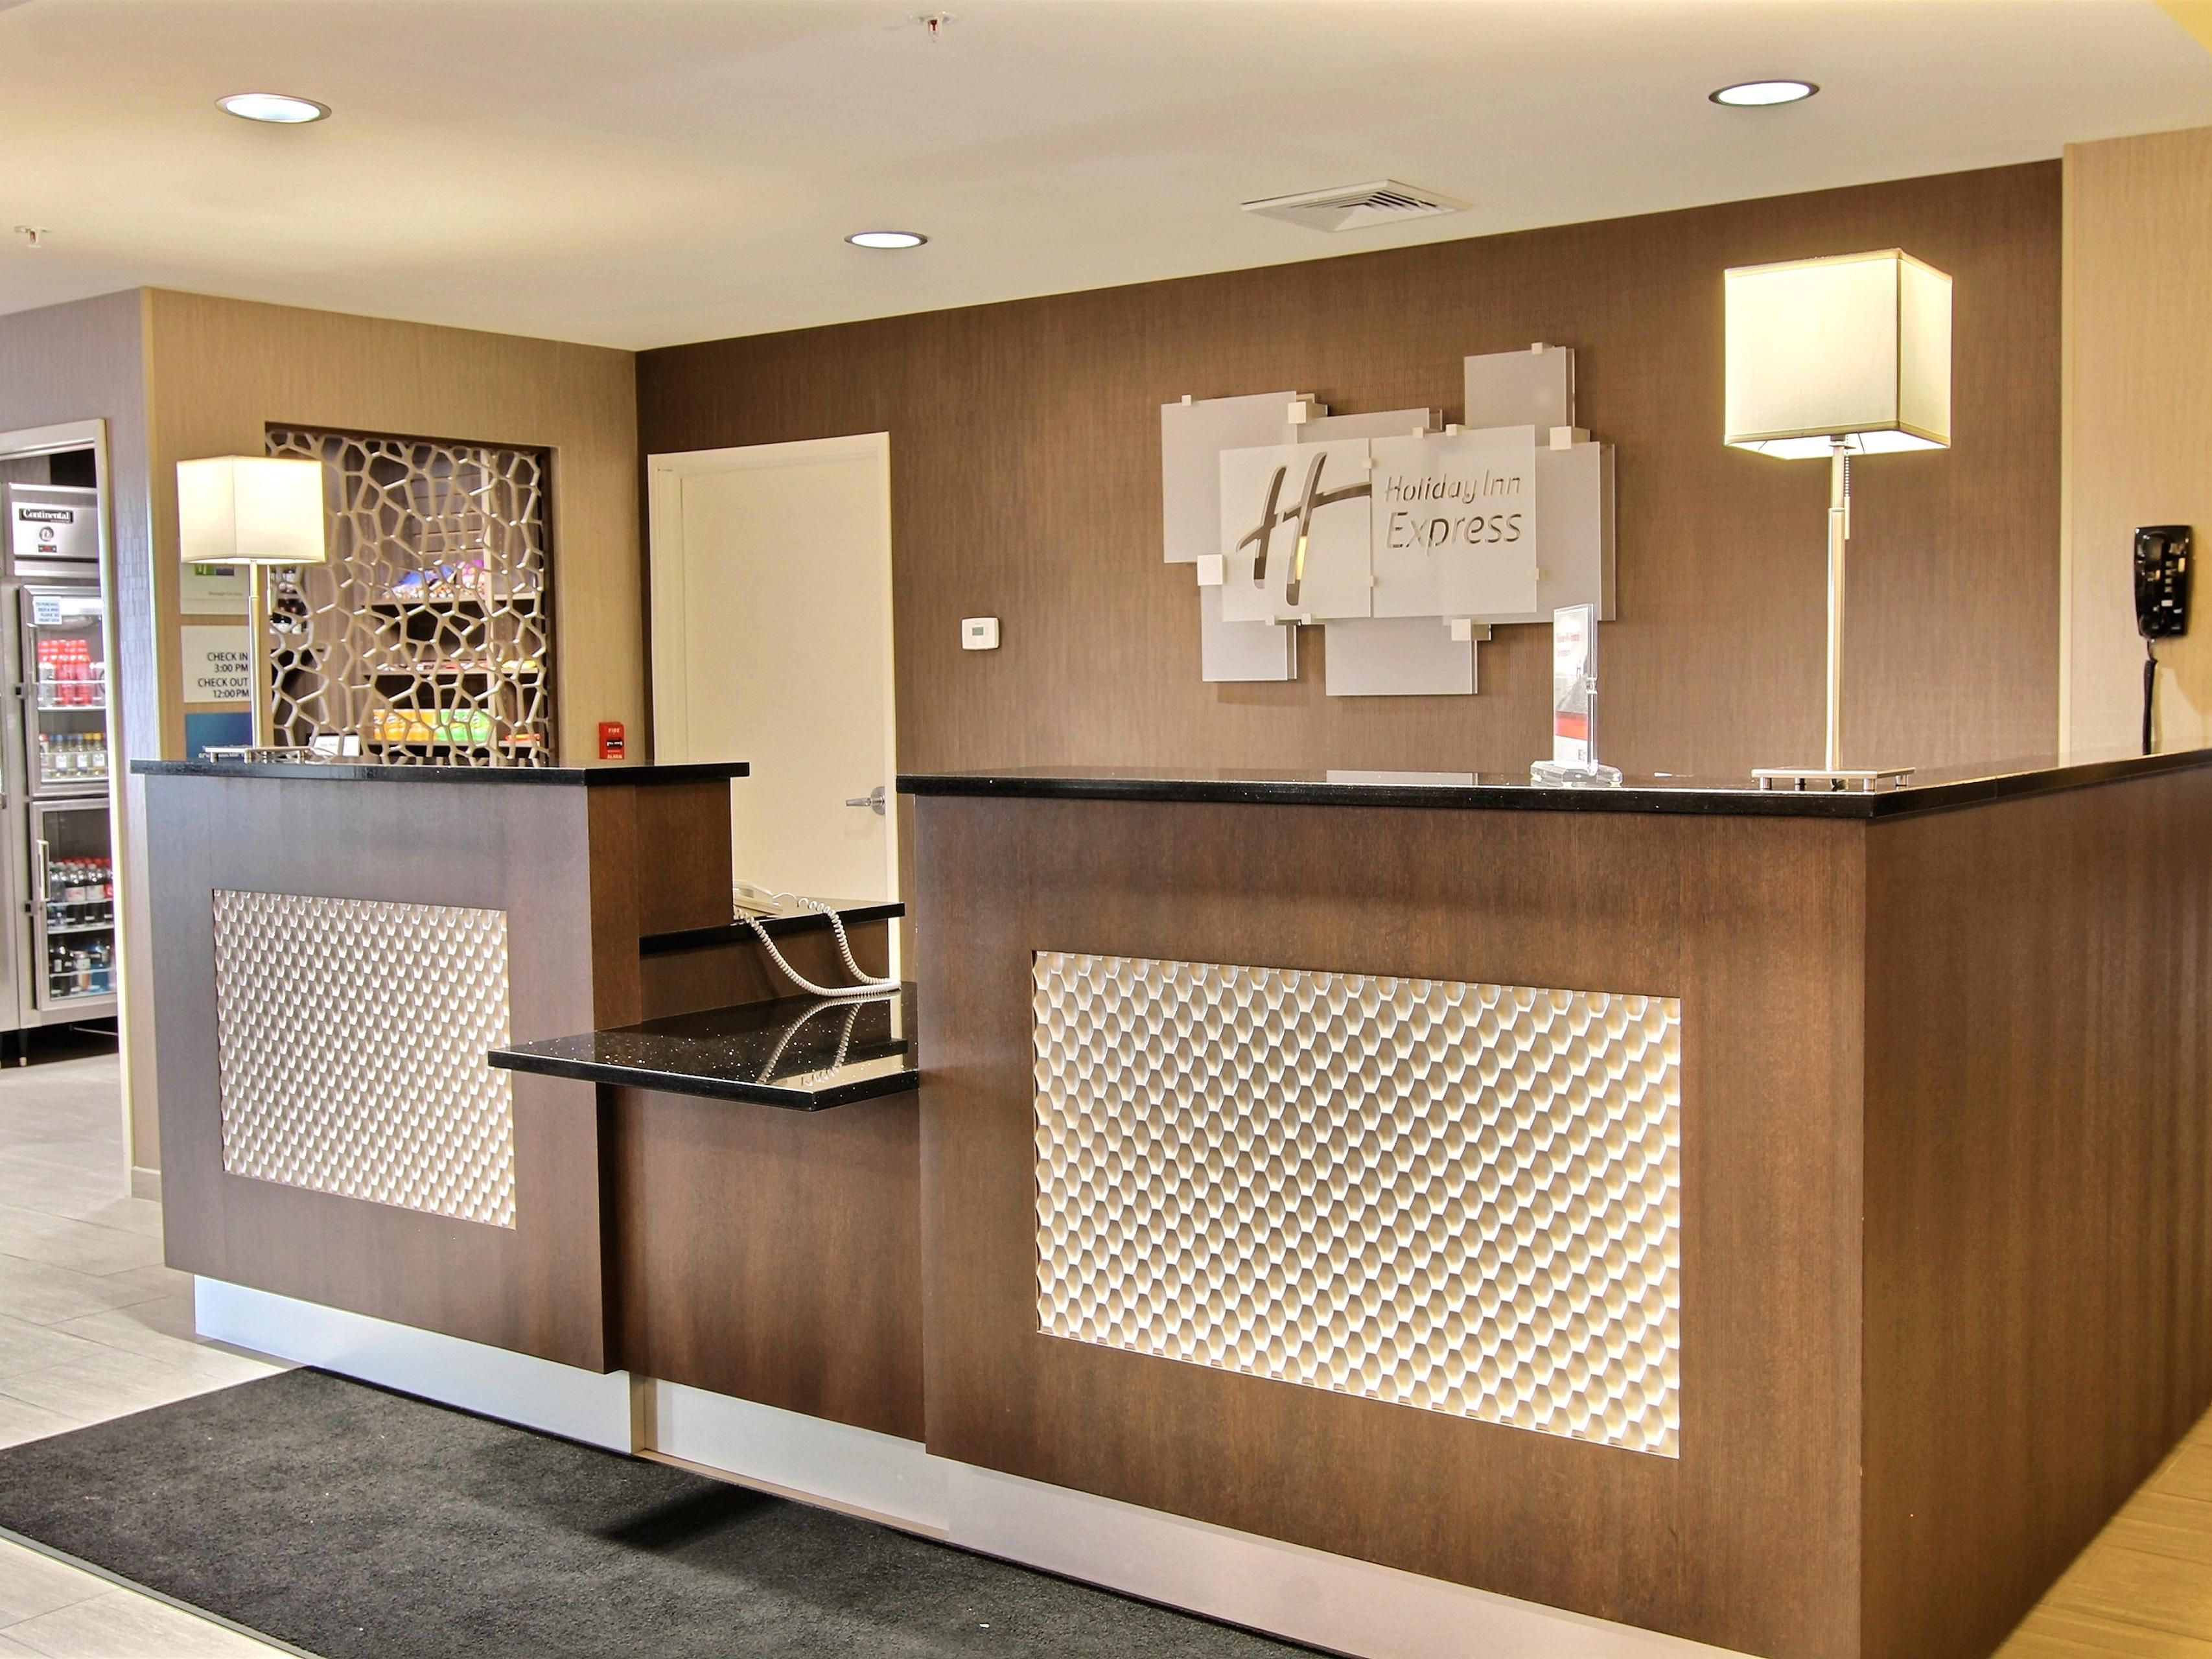 Check into your home away from home at our front desk.